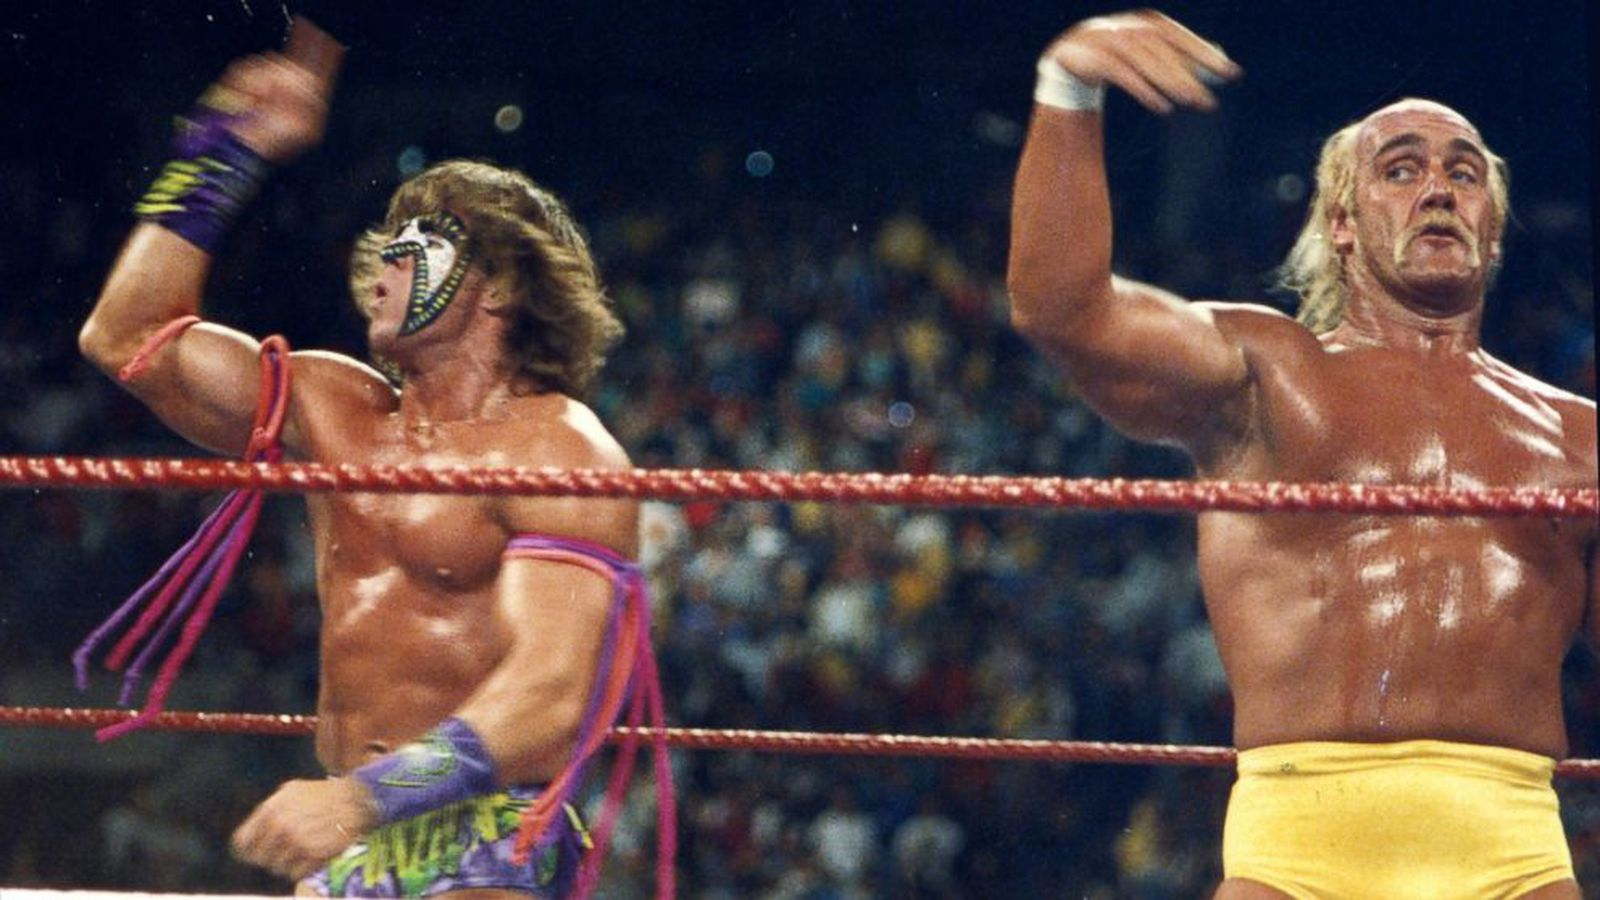 My favorite WrestleMania match: Hulk Hogan vs. Sid Justice ...